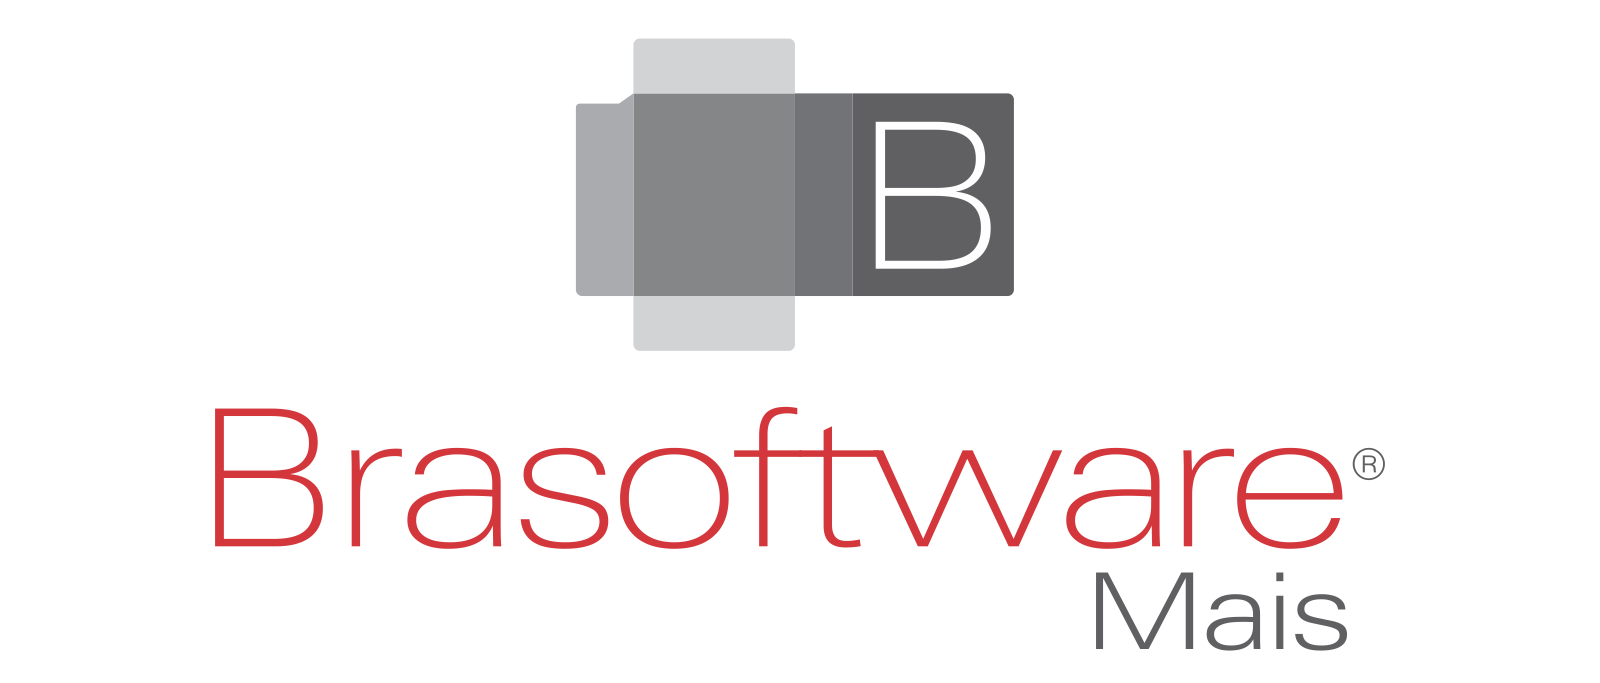 Logo Brasoftware Mais